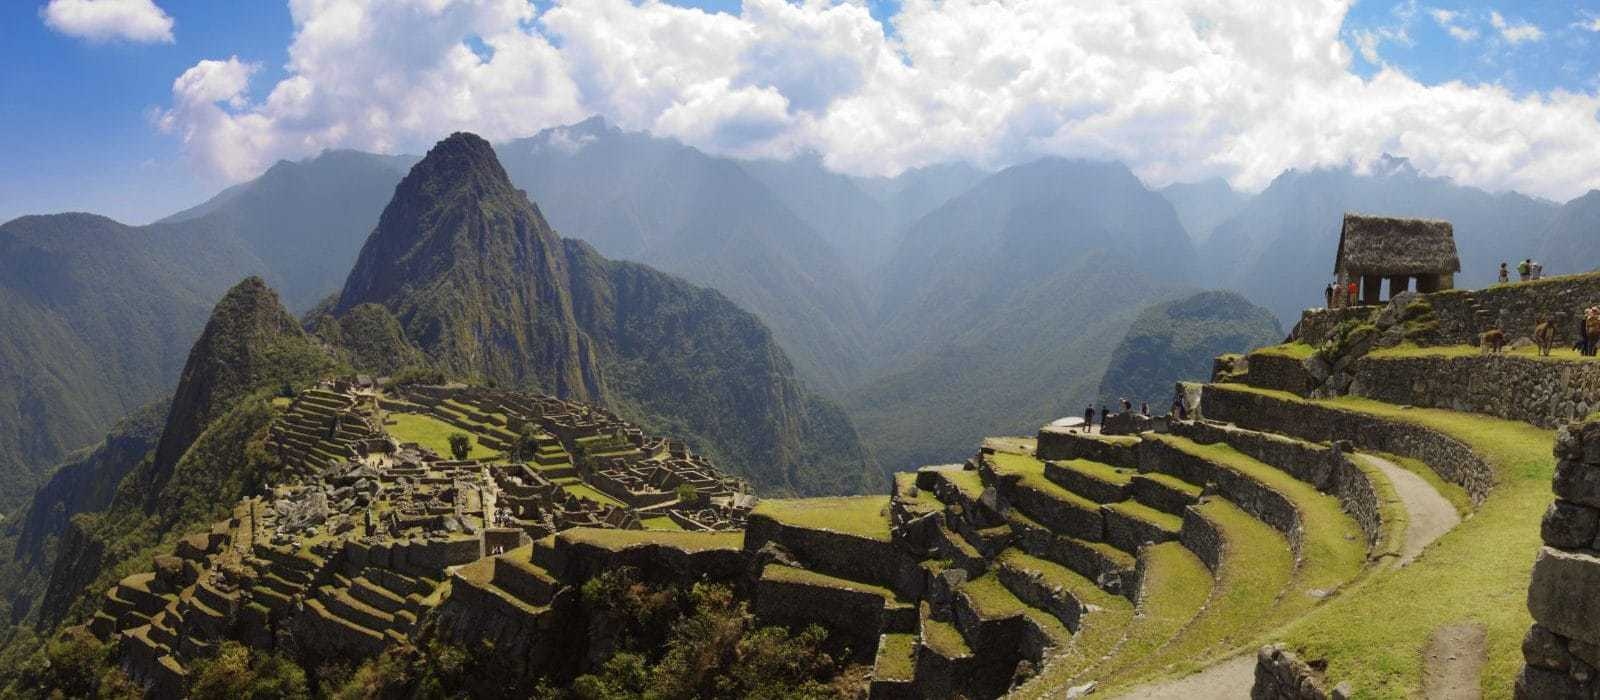 Panoramic View of Machu Picchu